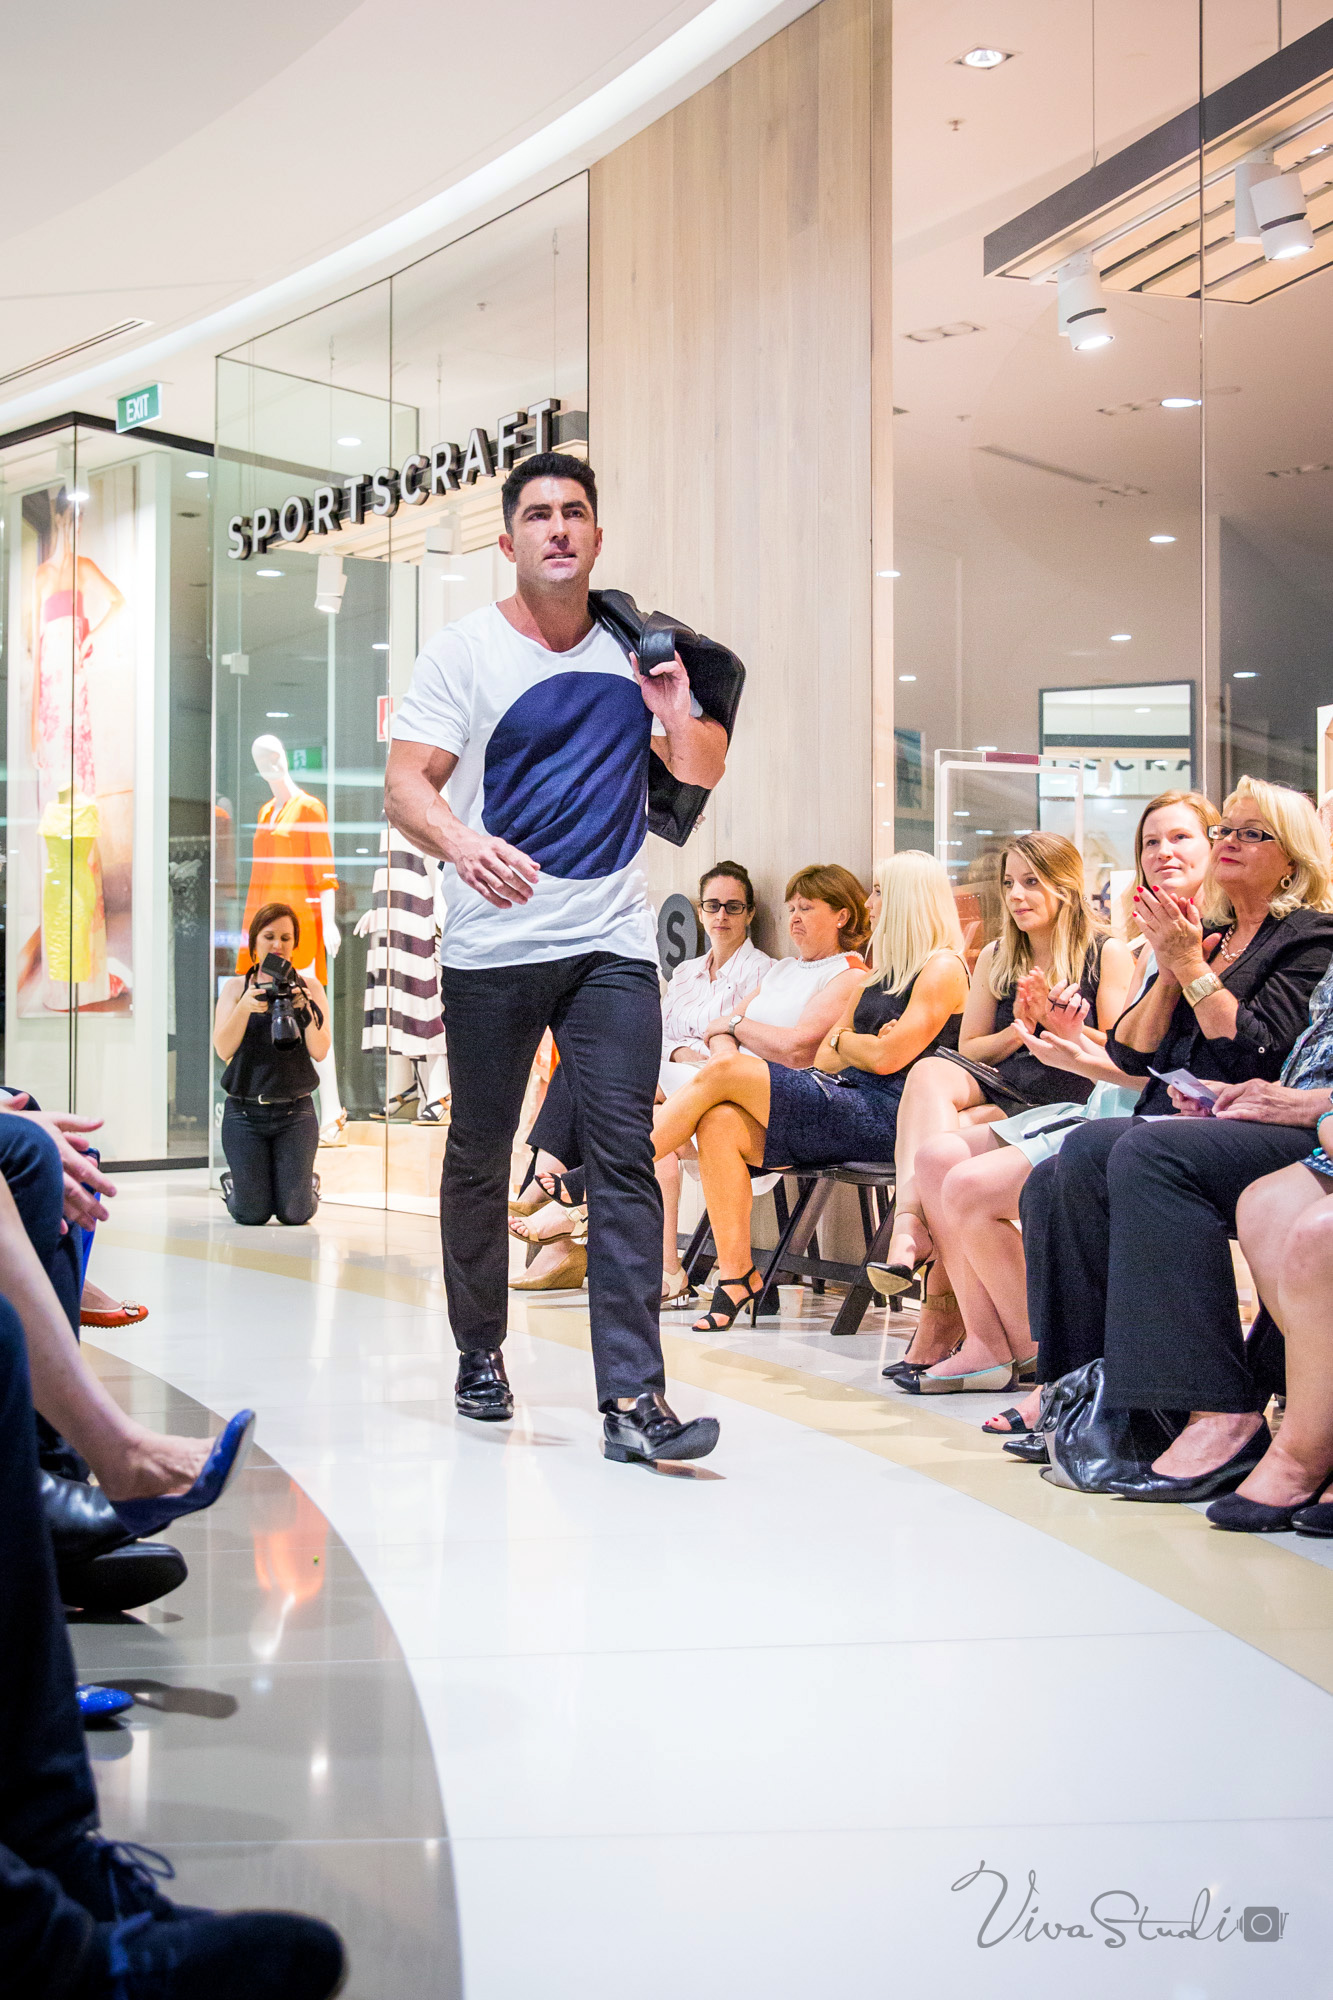 VivaStudio_Design_Photograpphy_Brisbane_Event_Fashionable_20151105_0175